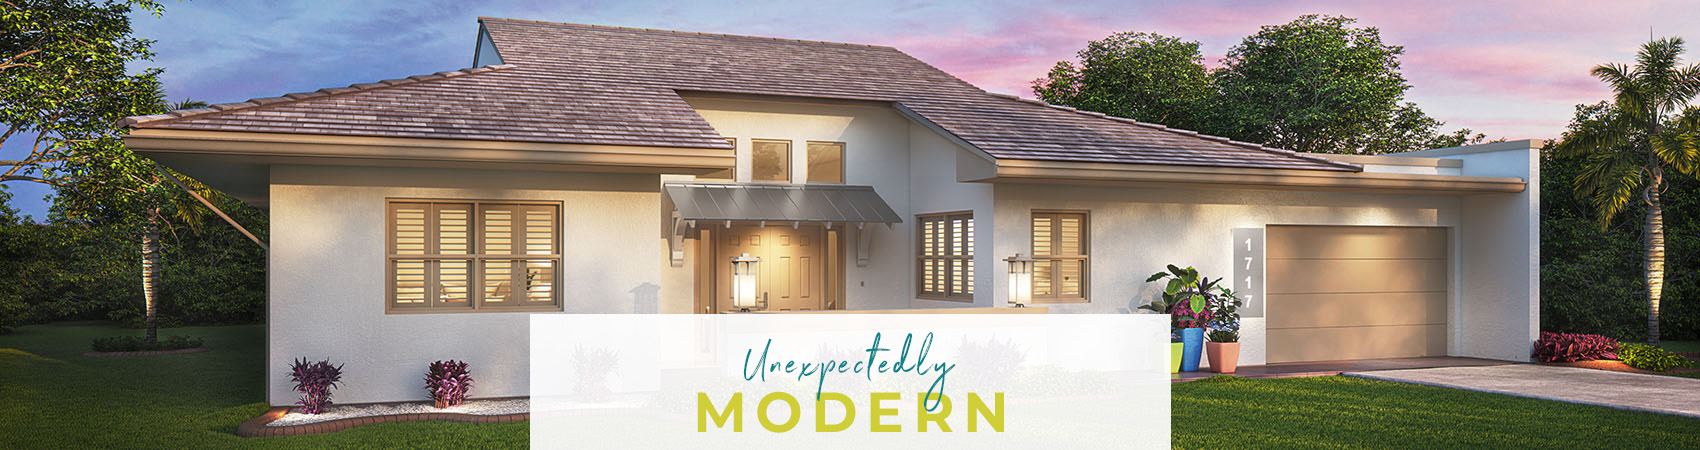 Newly Remodeled Garden Homes